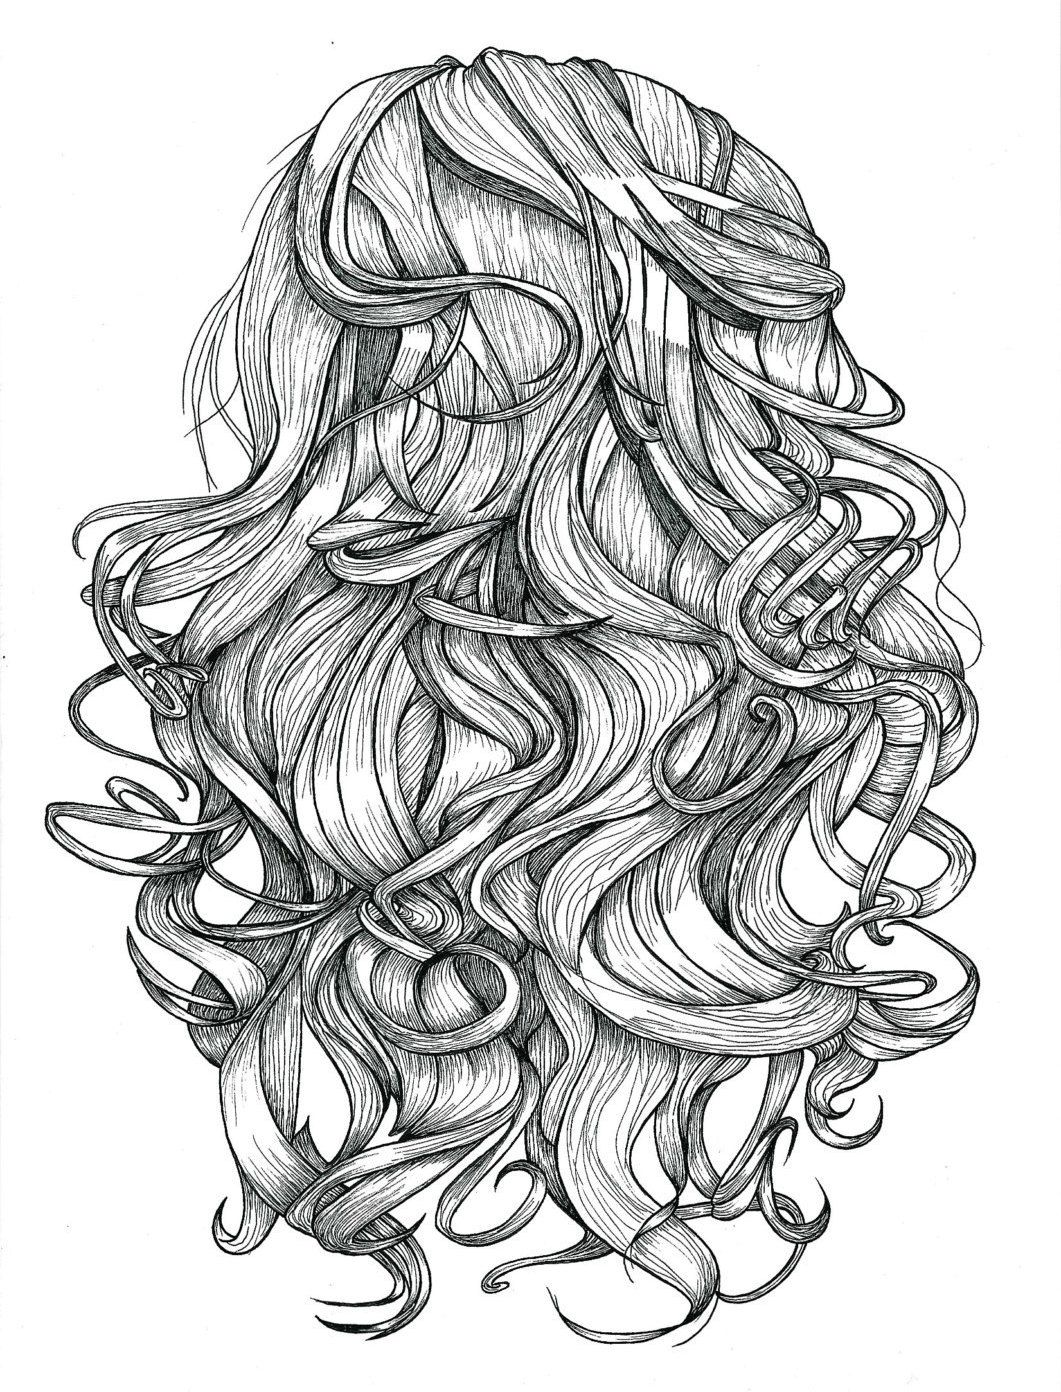 Curly Hair Print Of Original Illustration Ink Black And White Line Art Portrait Hair Wall Art Poste Hair Print Curly Hair Styles Black And White Drawing